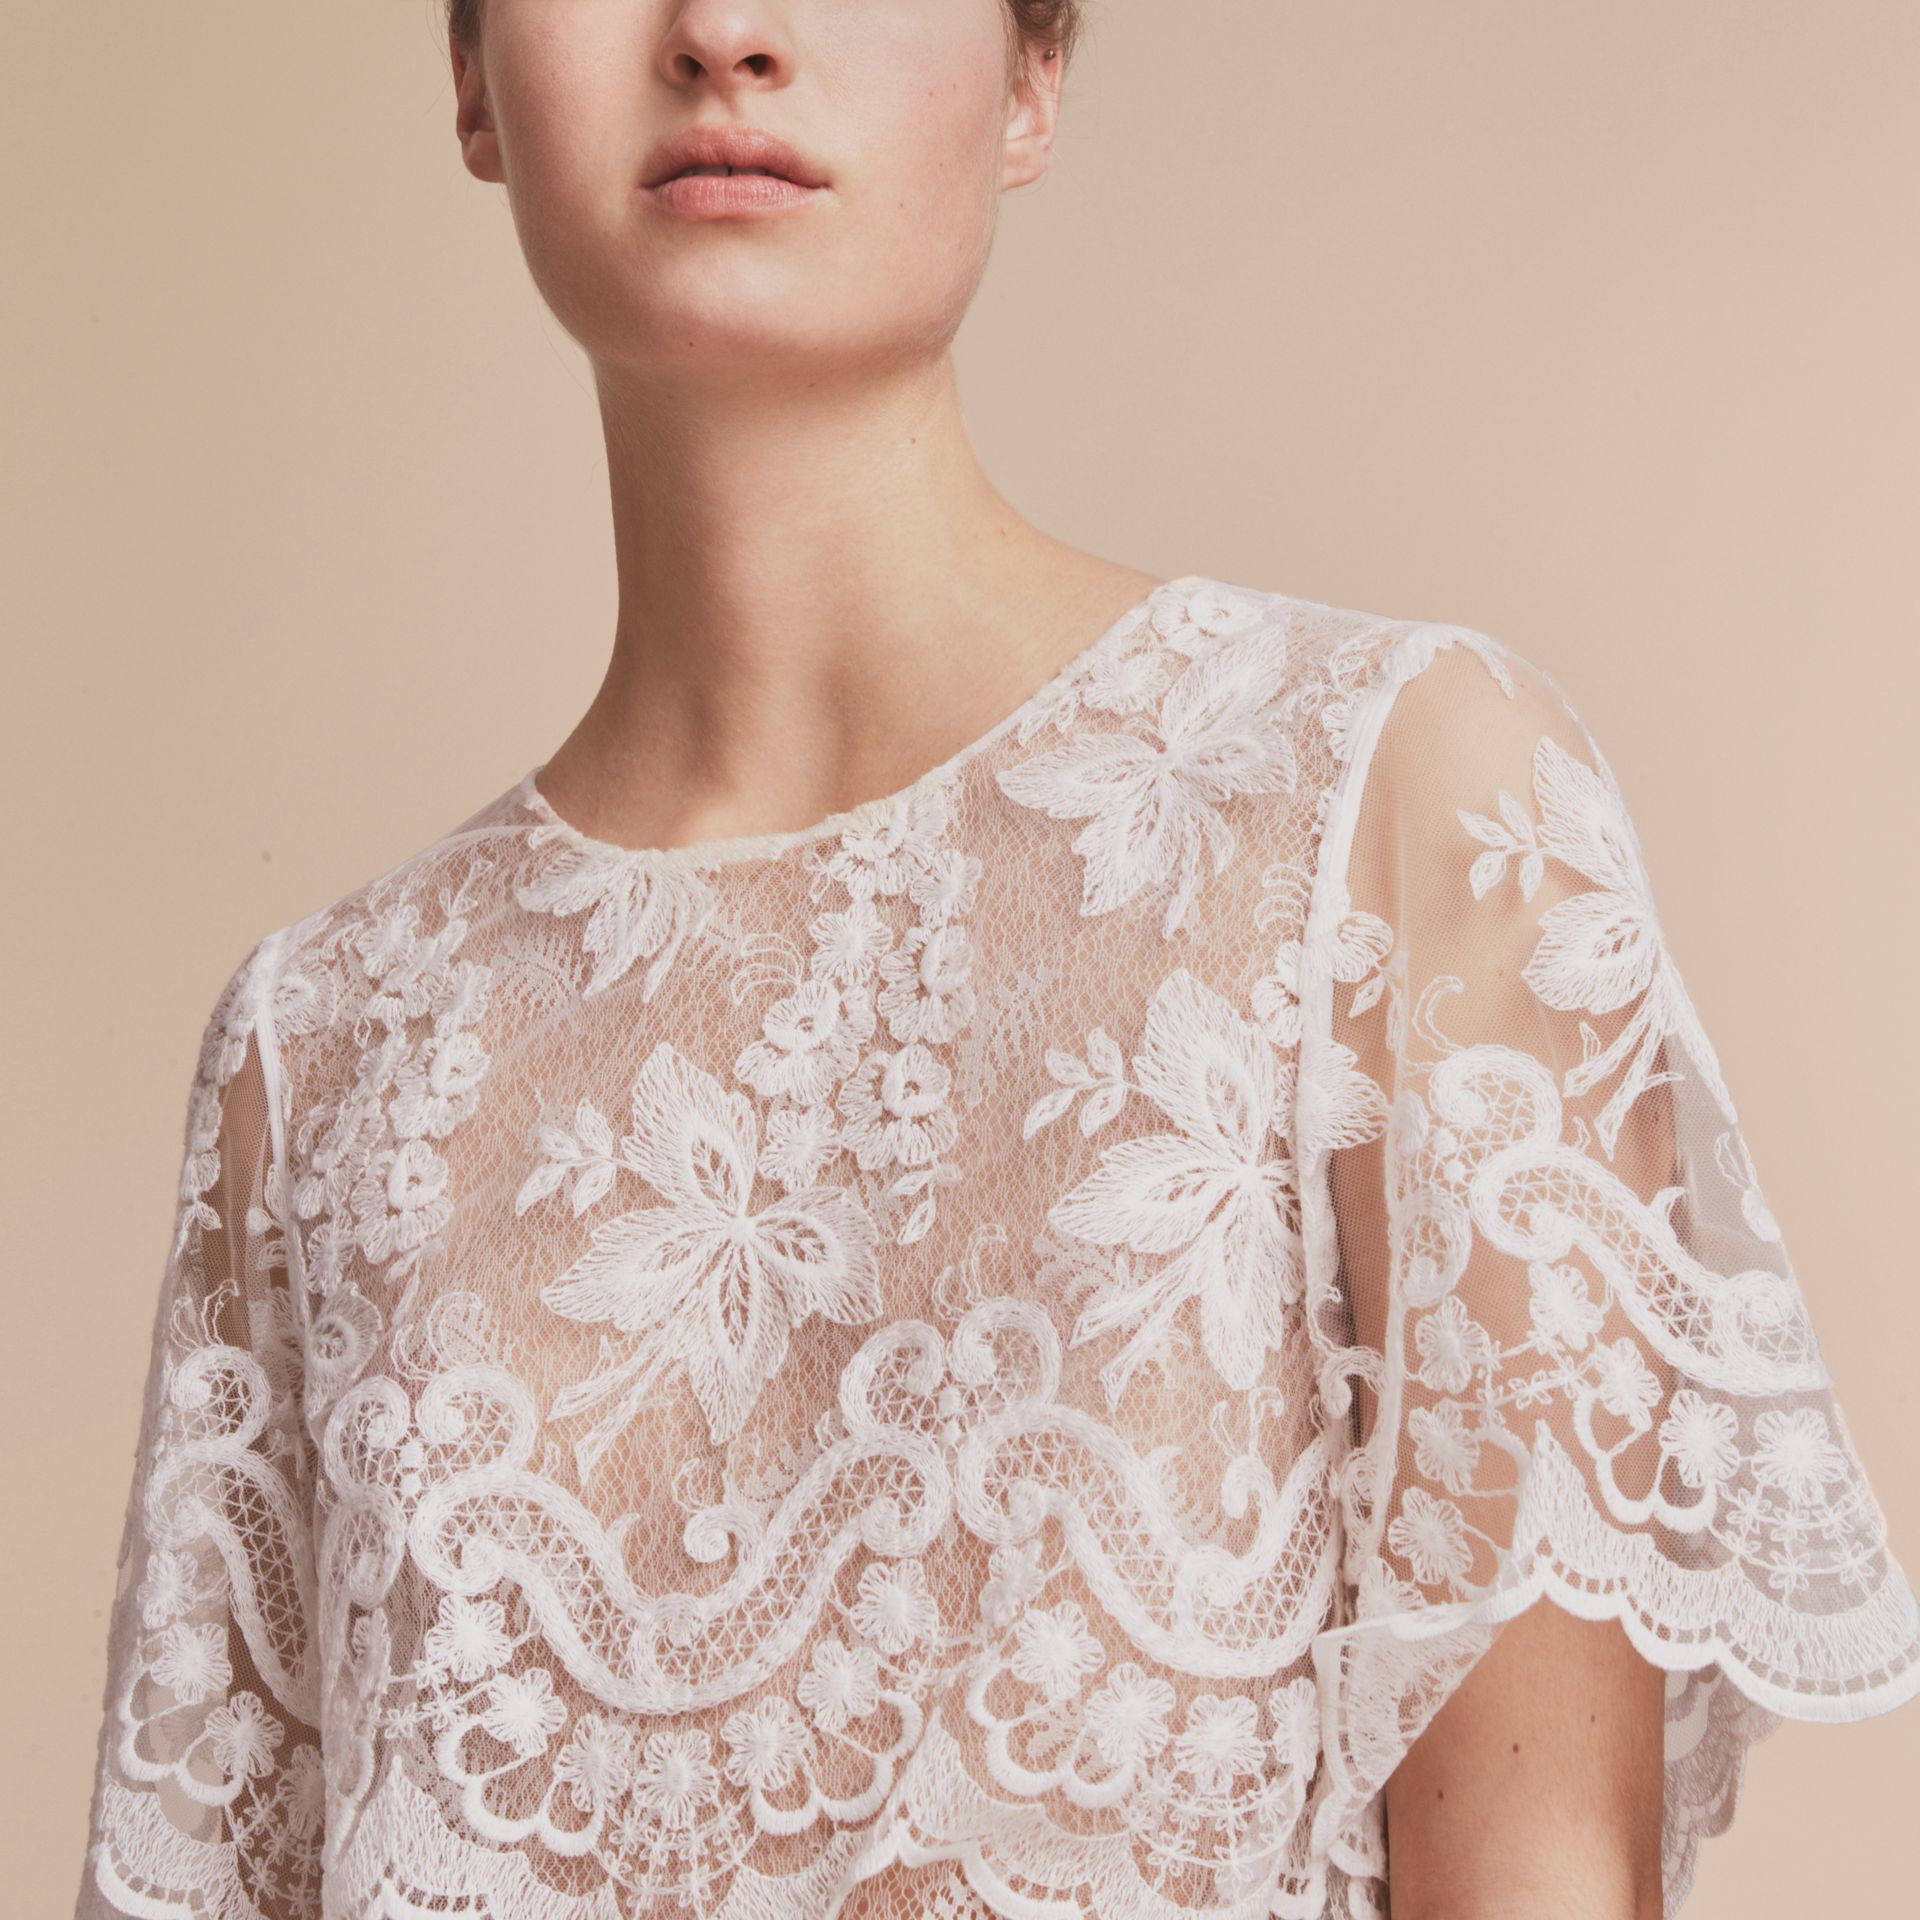 Layered Lace Shift Dress in White - Women | Burberry - gallery image 5